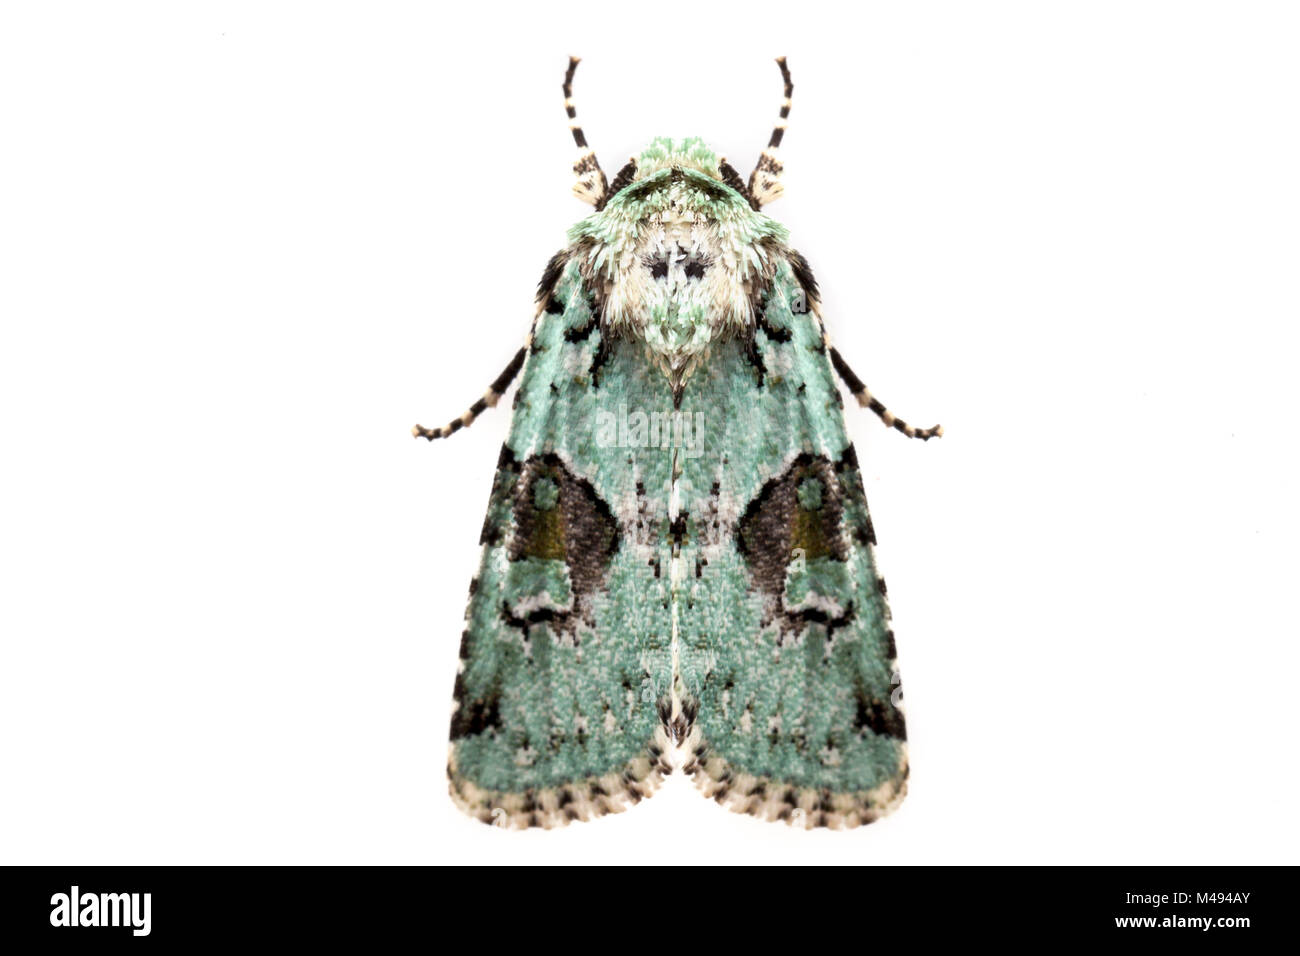 Implicit arches moth (Lacinipolia implicata) on white background, Tuscaloosa County, Alabama, USA October - Stock Image